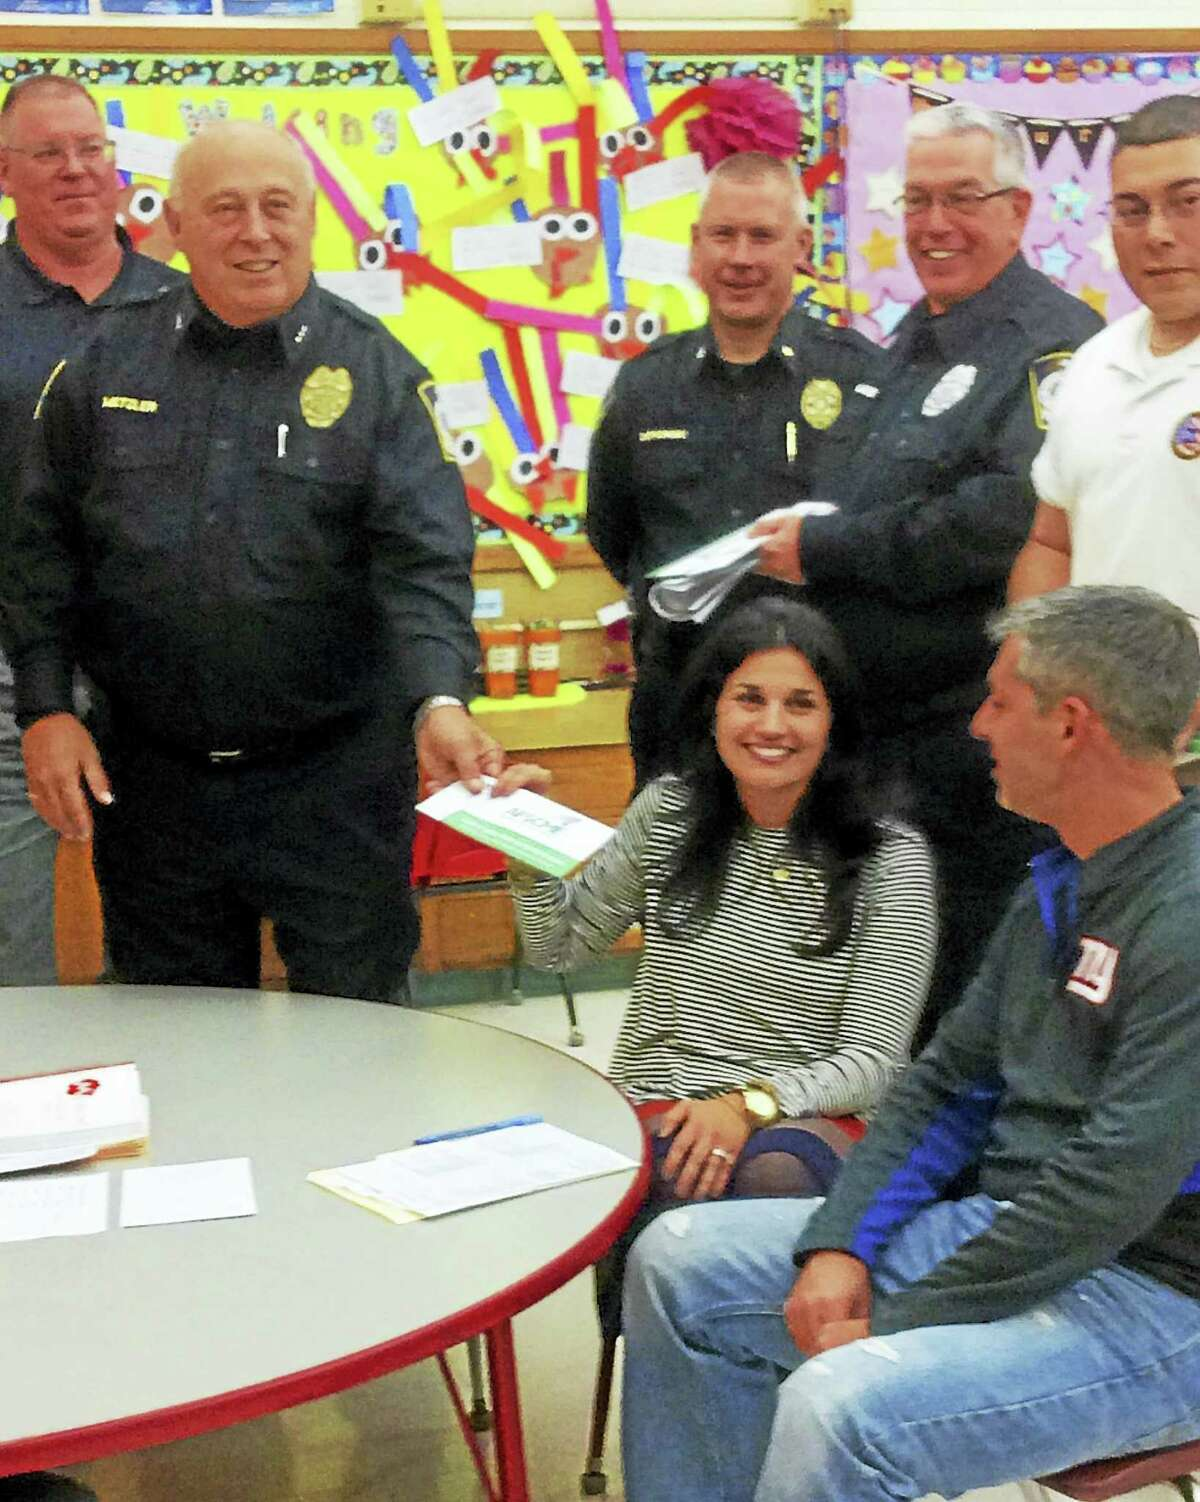 From left, Seymour schools Director of Security Richard Kearns, Police Chief Michael Metzler, Deputy Police Chief Paul Satkowski, Community Police Officer John Harkins and Officer Jonathan Martin; and seated, parents Jennifer and Yugo Ferreira.